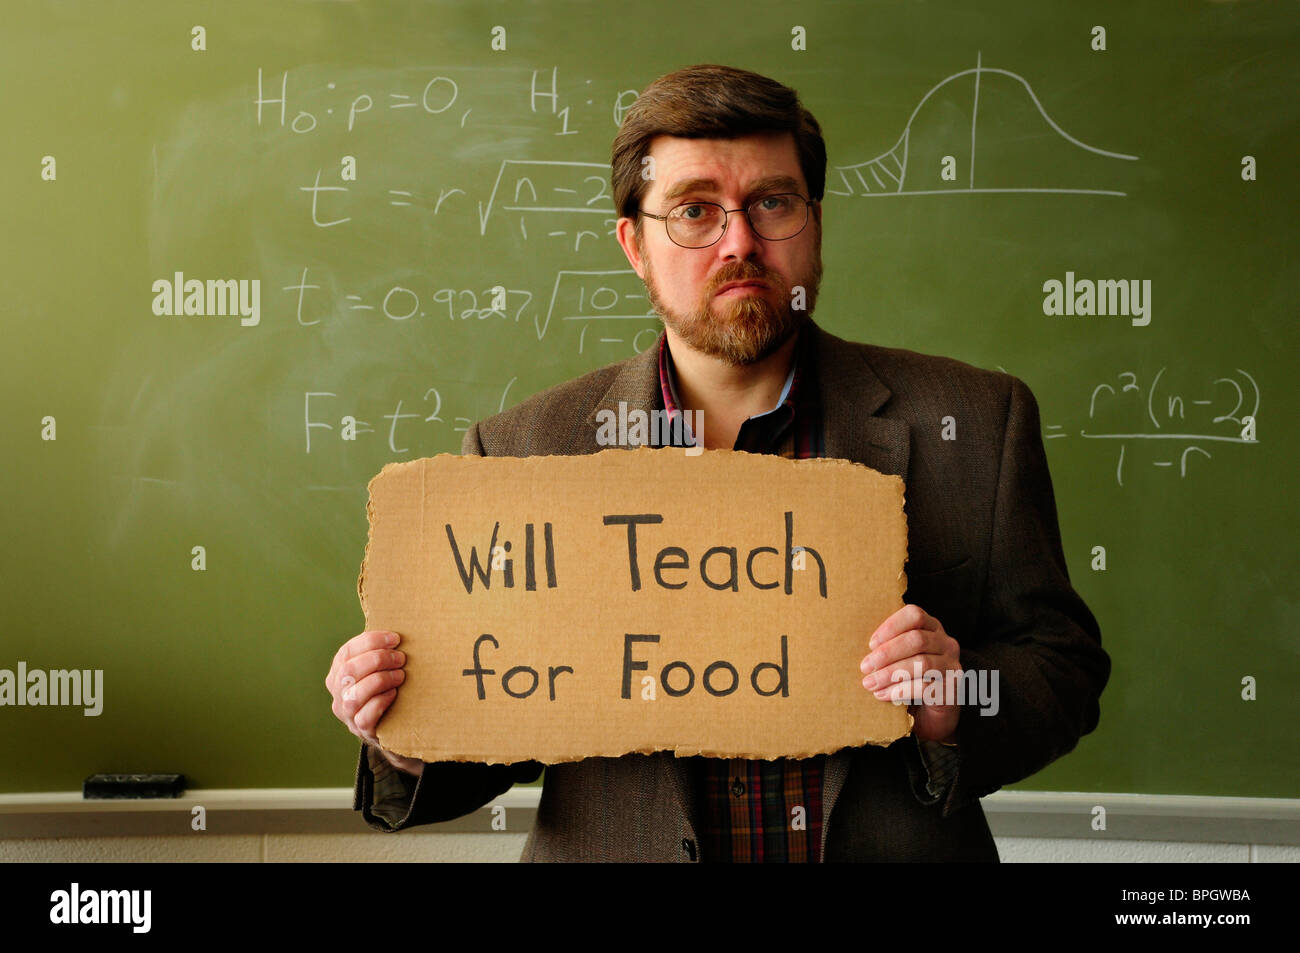 Professor or teacher in classroom holding a 'Will Work for Food' sign. Statistical formula on chalkboard - Stock Image